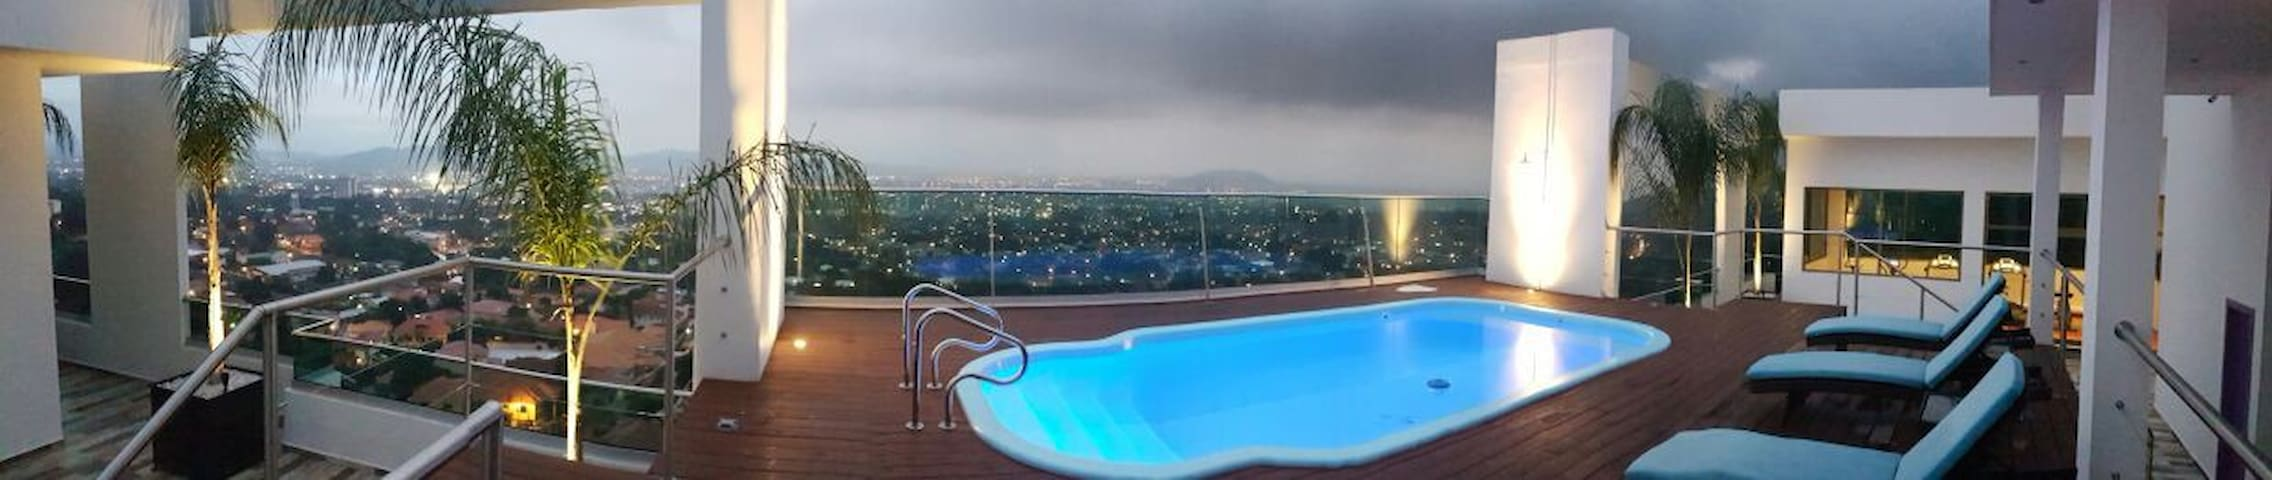 Perfect Stay and Great View - San Pedro Sula - Selveierleilighet